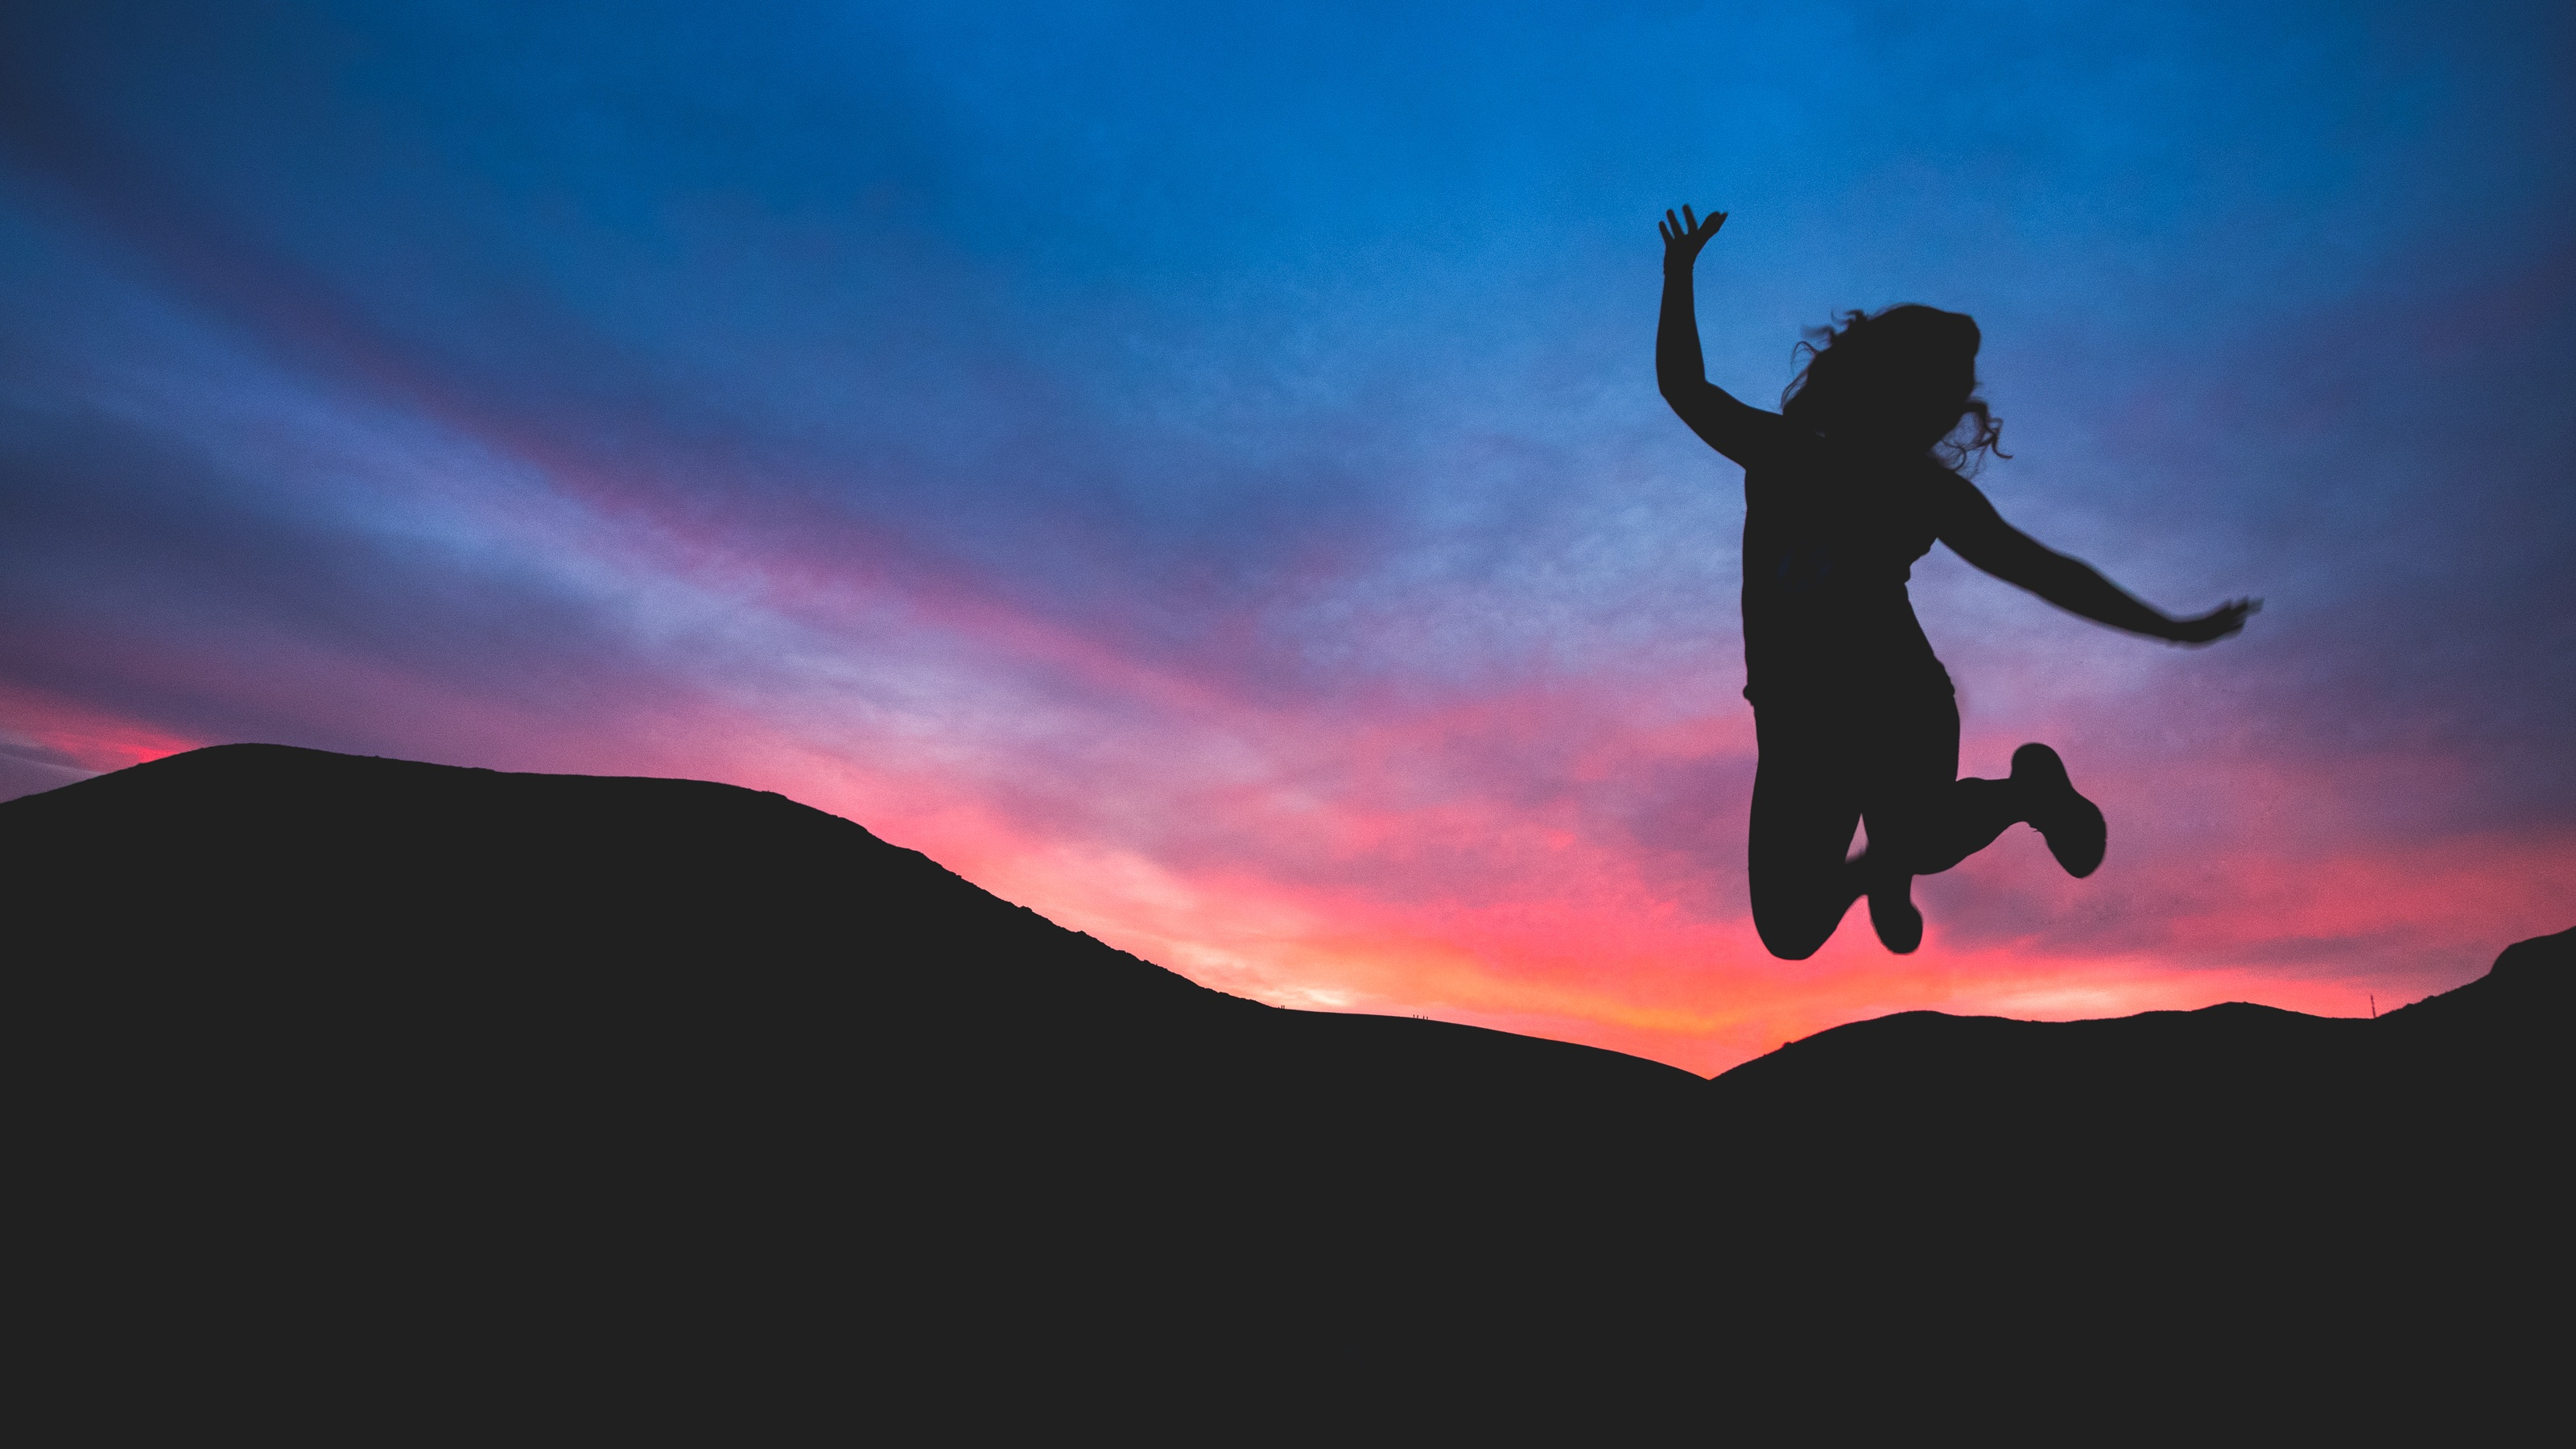 Silhouette girl jumping at sunset